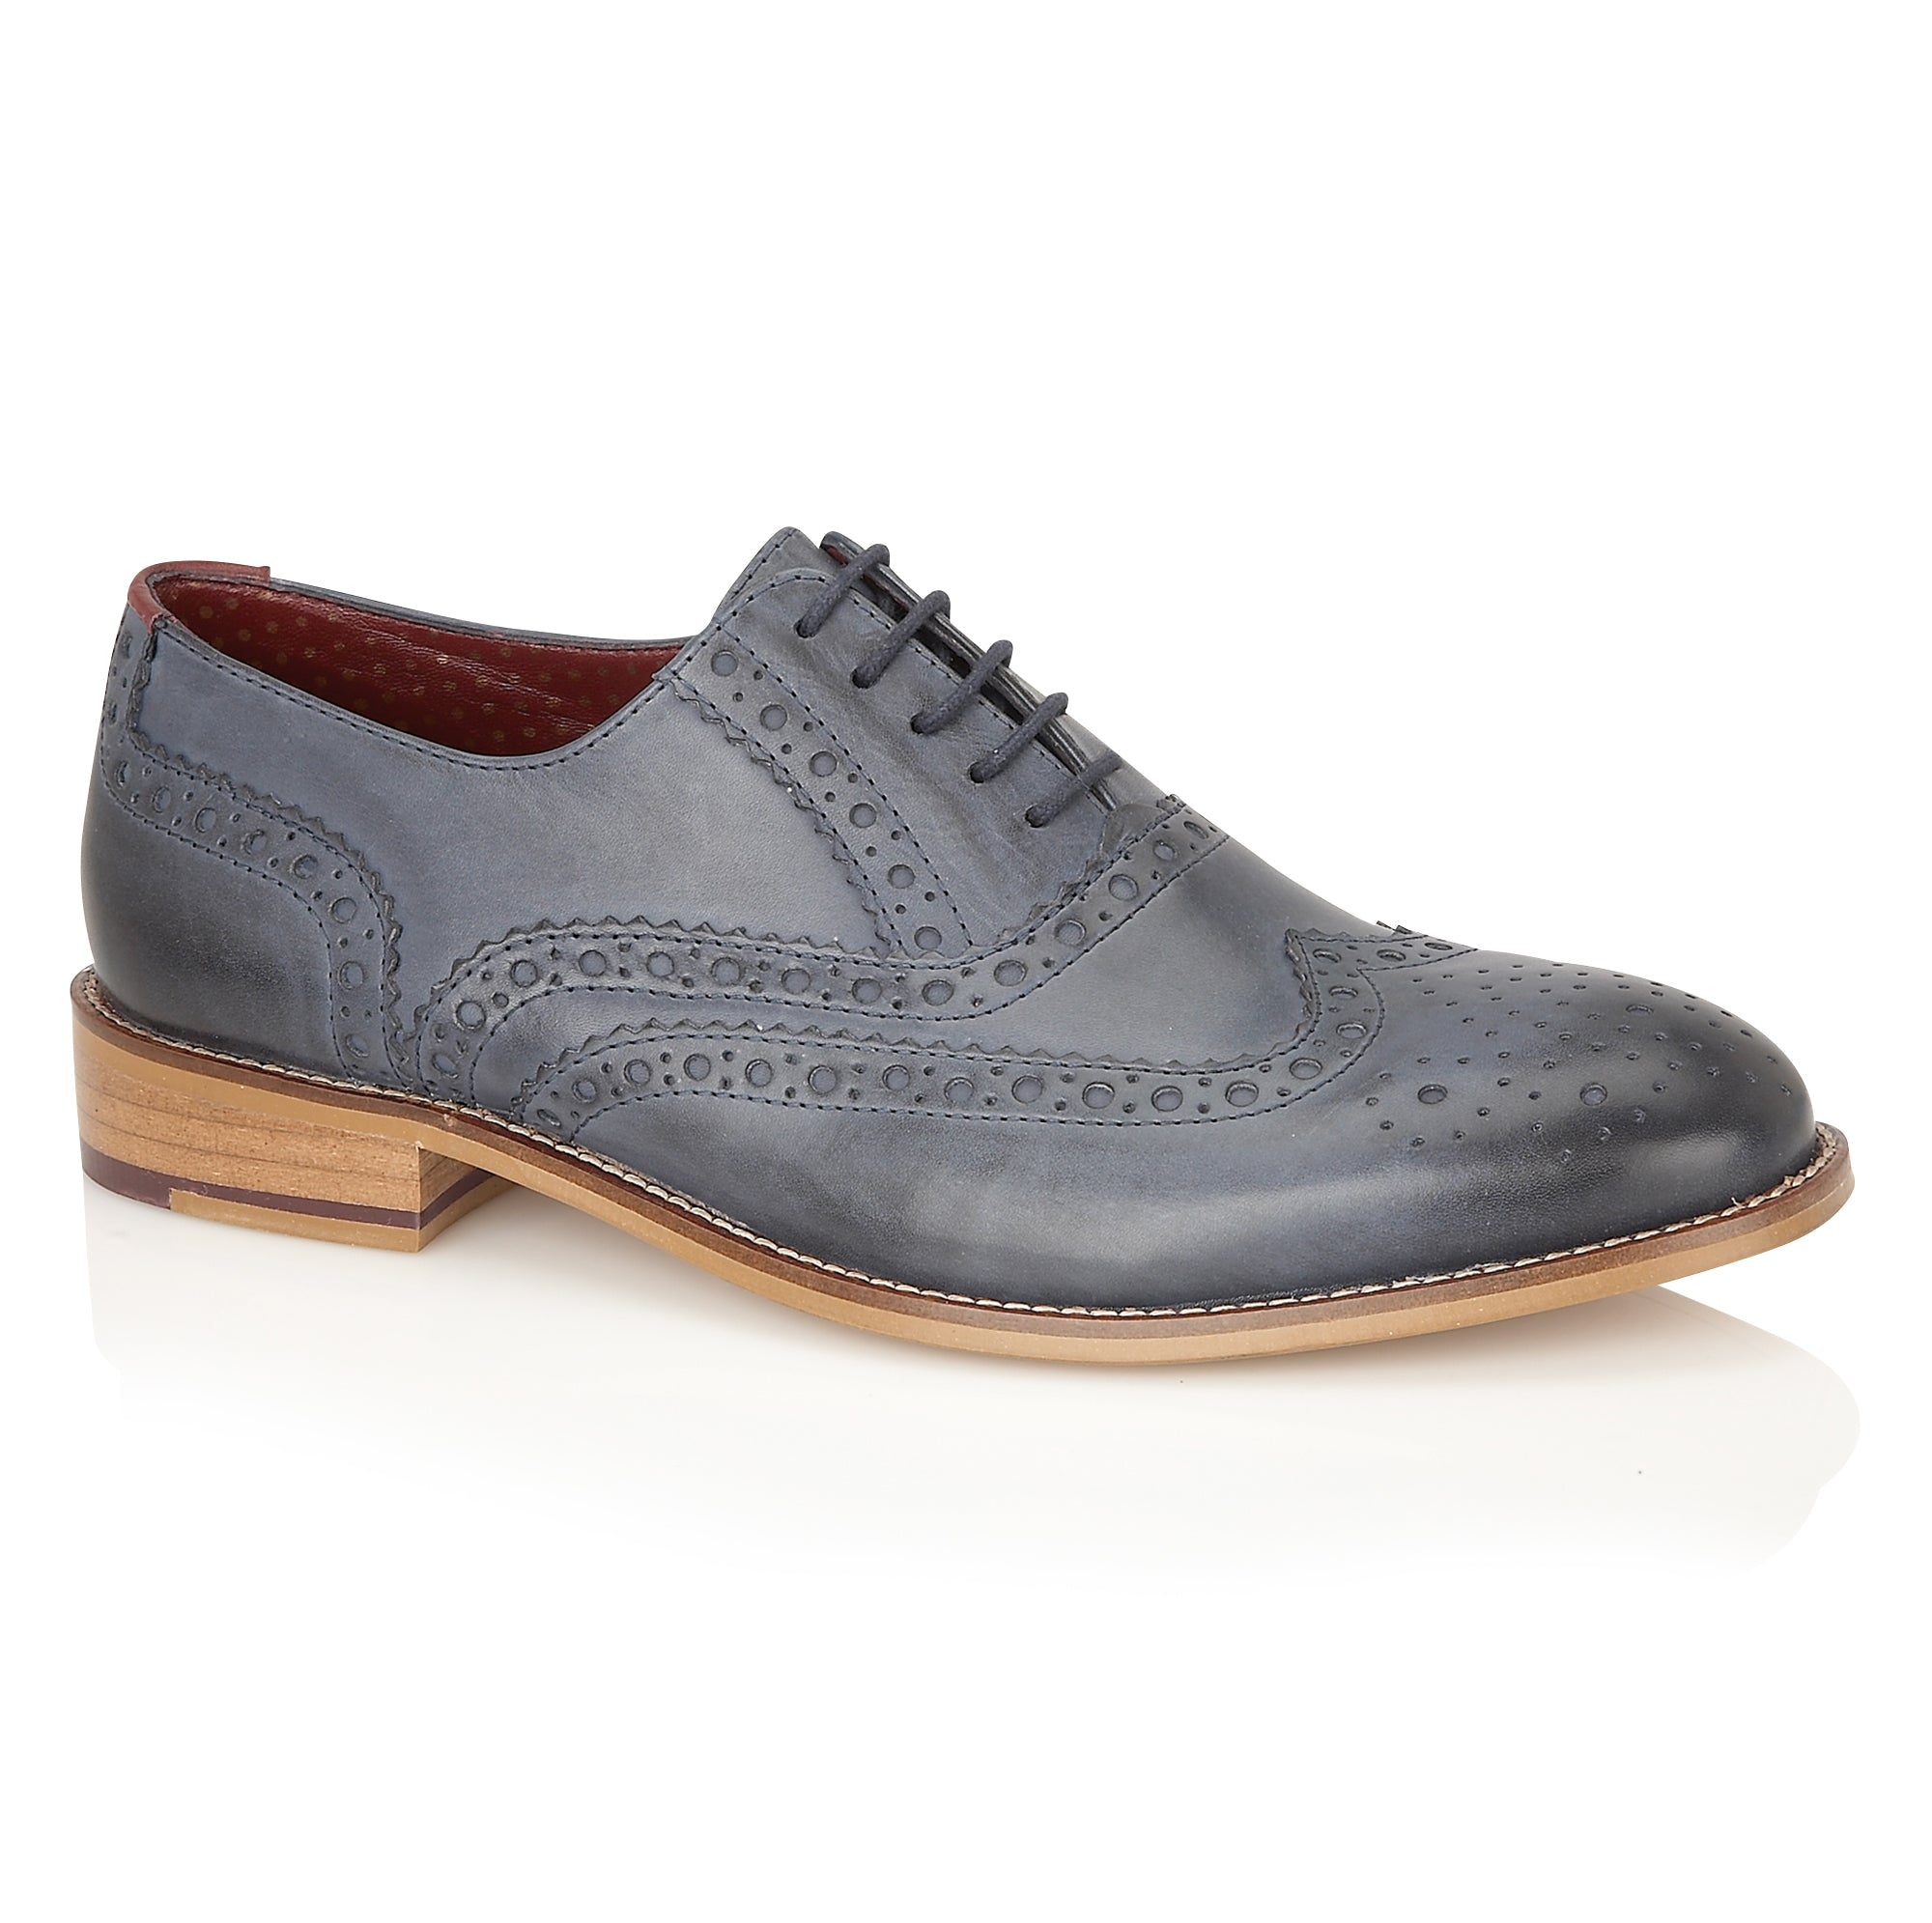 Gatsby Leather Brogue Navy, Shoes, London Brogues  - London Brogues